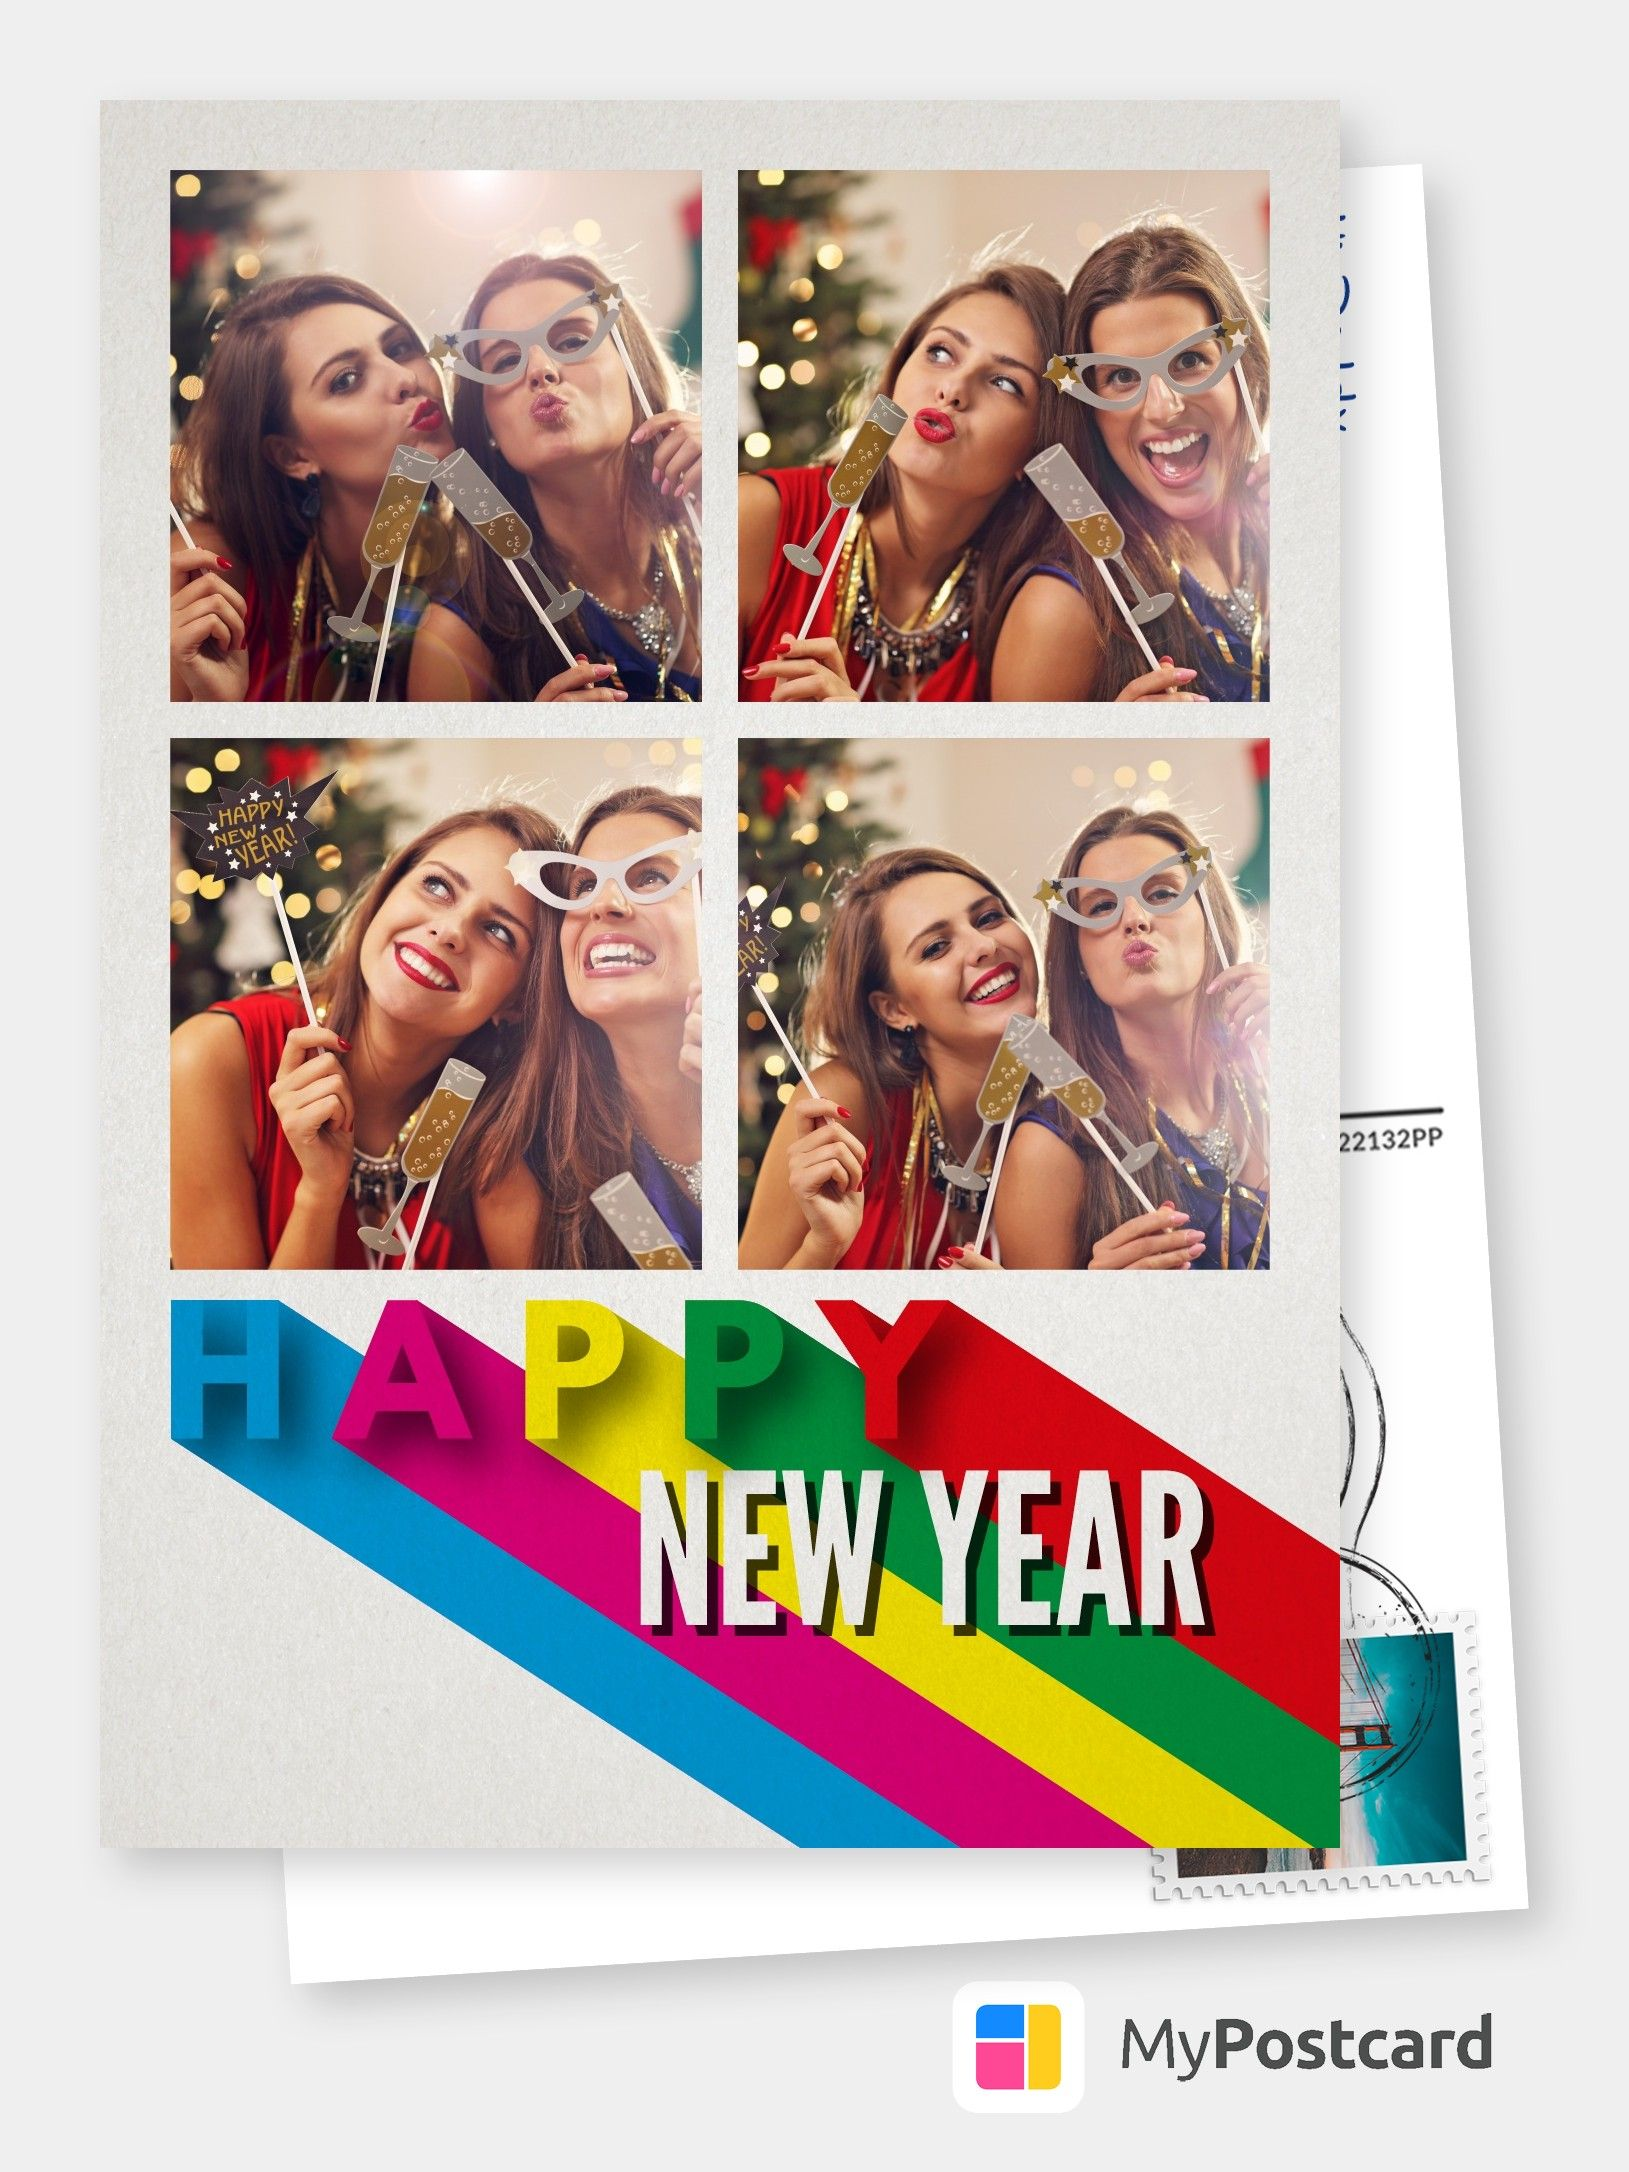 Happy New Year! Happy New Year Cards | Happy New Year Wallpaper | Happy New Year Cards Ideas | Happy New Year Cards Illustration | Happy New Year Greetings | Happy New Year Greetings Card | Happy New Year Greetings Quotes | Happy New Year Greetings Inspiration. Costumizable New years greeting card with lettering in rainbow colors. #happynewyear #newyearseve #newyear #greetings #postcard